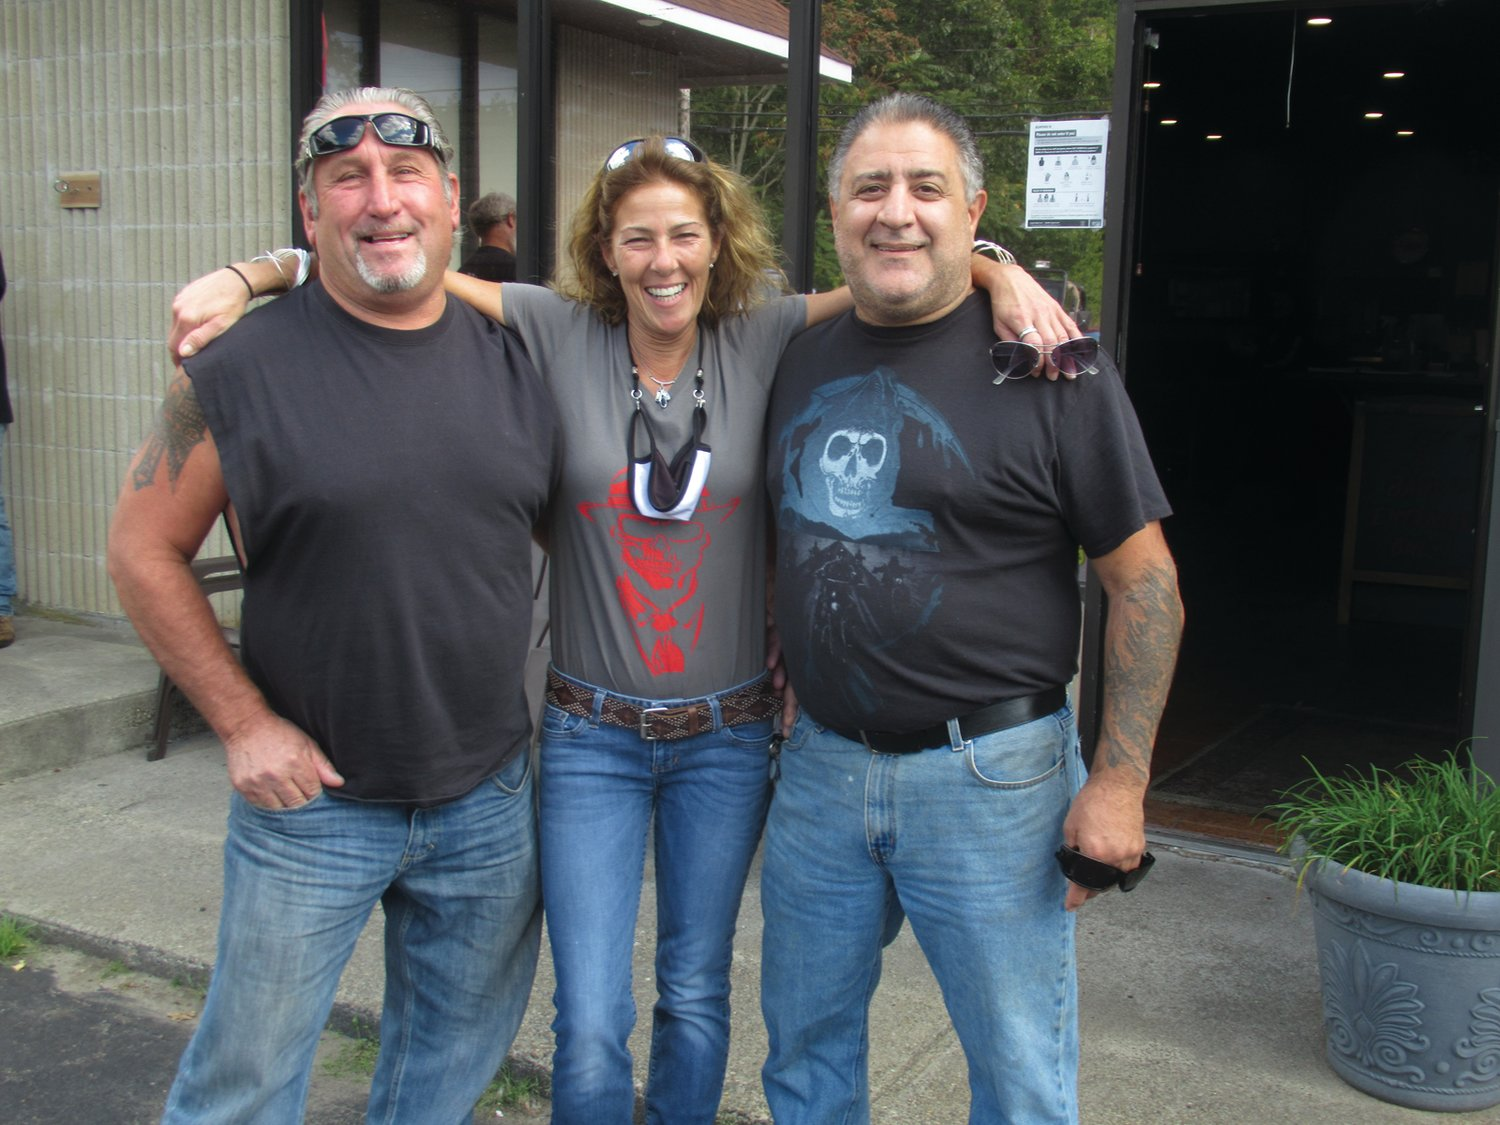 POPULAR PROPRIETOR: Stephanie Harris, who owns and operates Strings Bar & Grille in Johnston, is joined by Joe Pingitore (left) — who she rode with during Saturday's Goodfellas Motorcycle Run – and her chef Al Forte, who helped make the pre-fun festivities a special success.